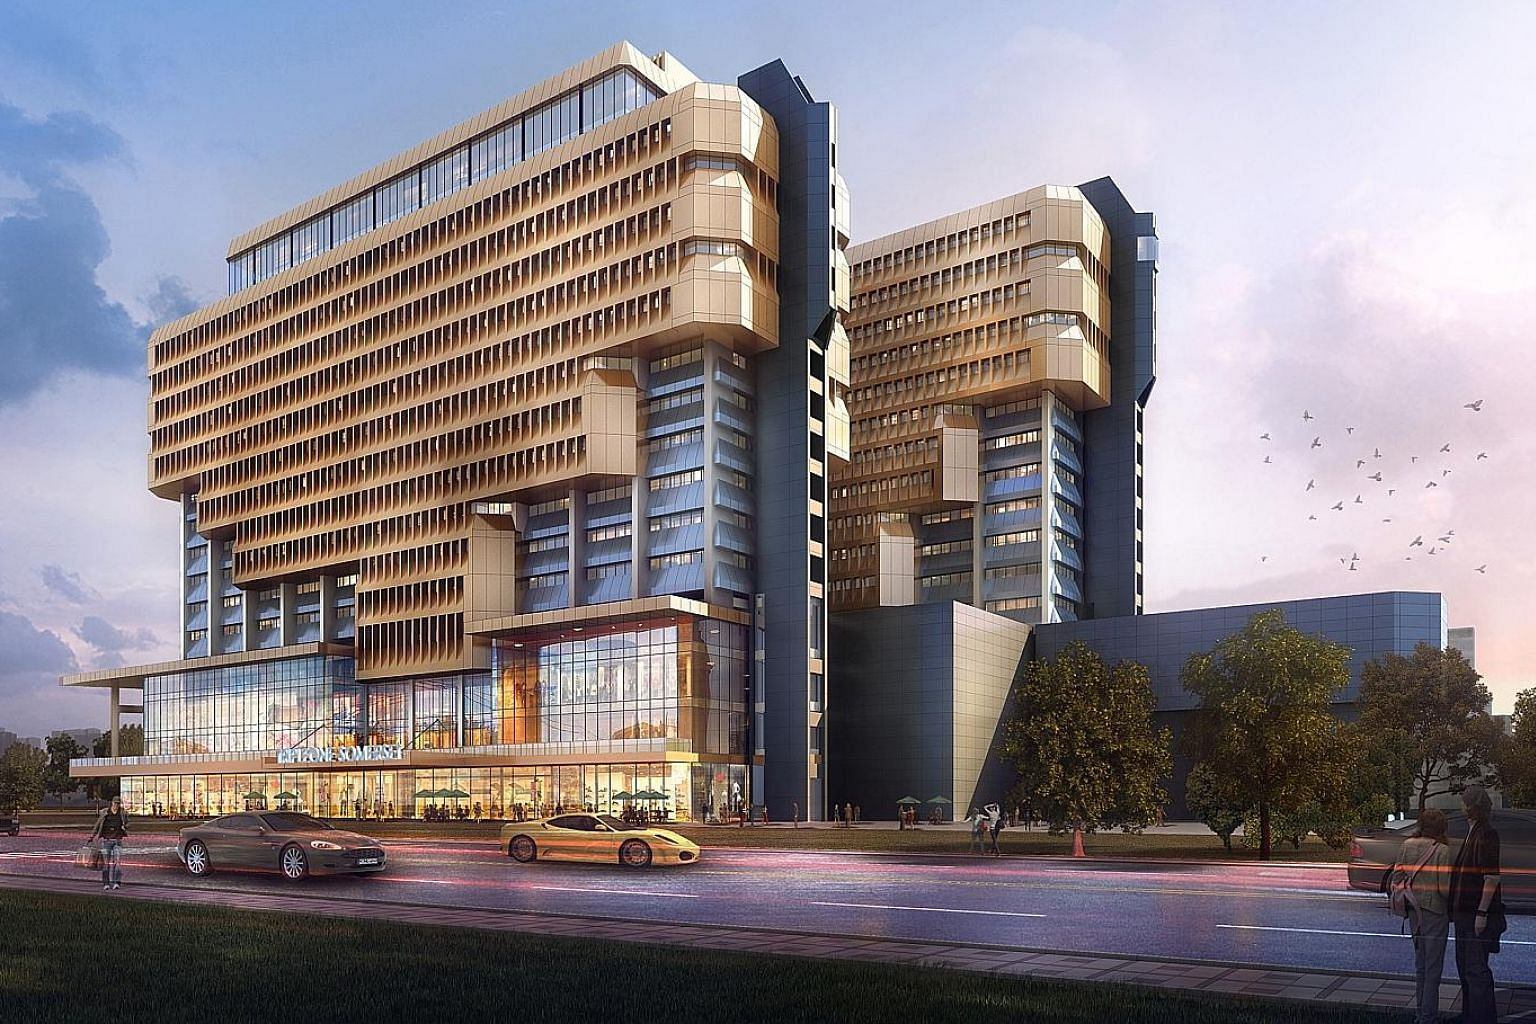 TripleOne Somerset is a prime integrated development with two office towers and a retail podium next to Somerset MRT station. The rare offering of an entire seventh floor of 15 units at the Somerset Tower building in the premium Orchard Road area is